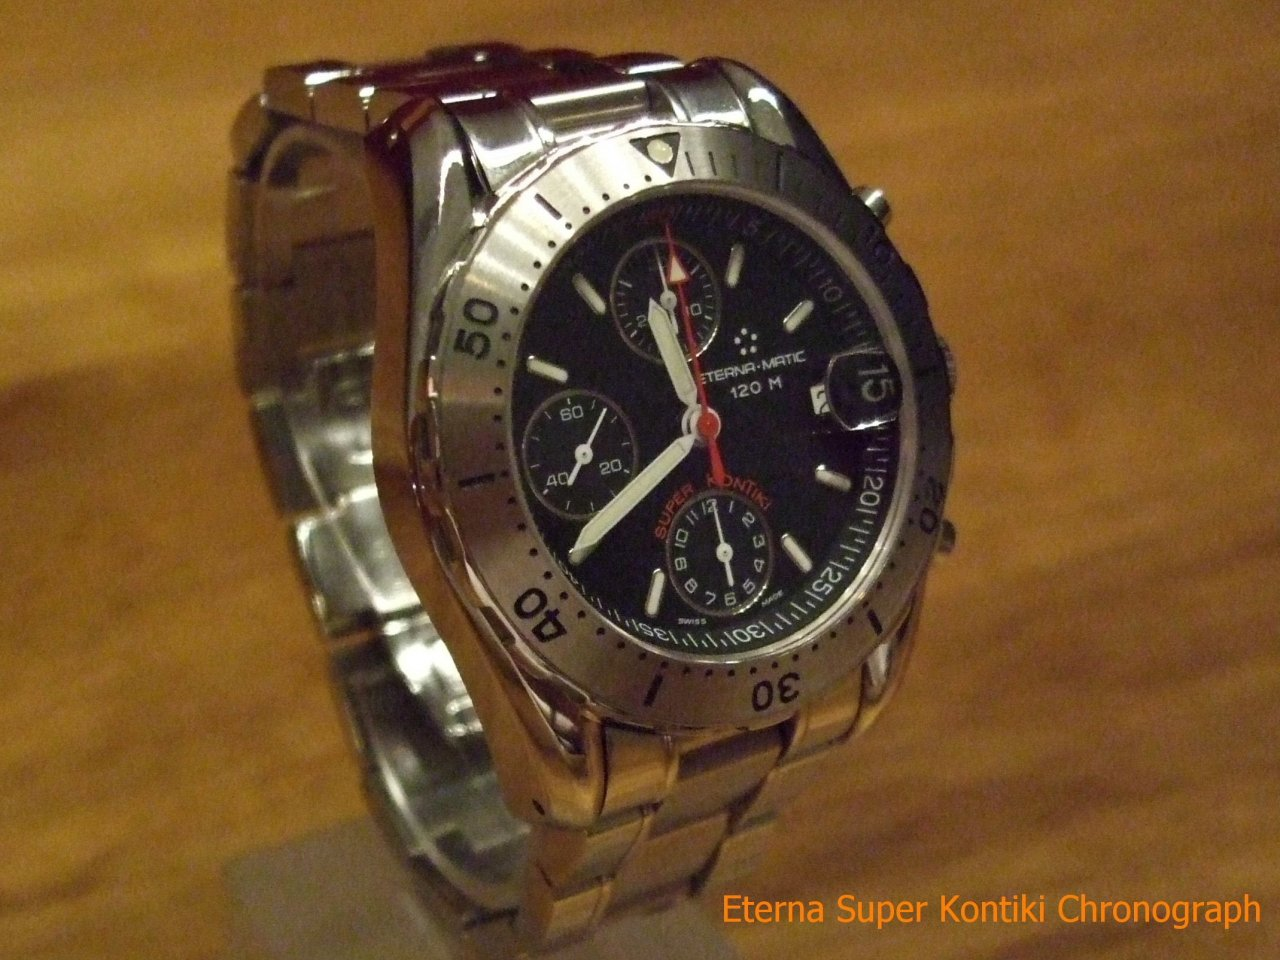 Eterna Matic Super Kontiki Eterna-super-kontiki-chrono